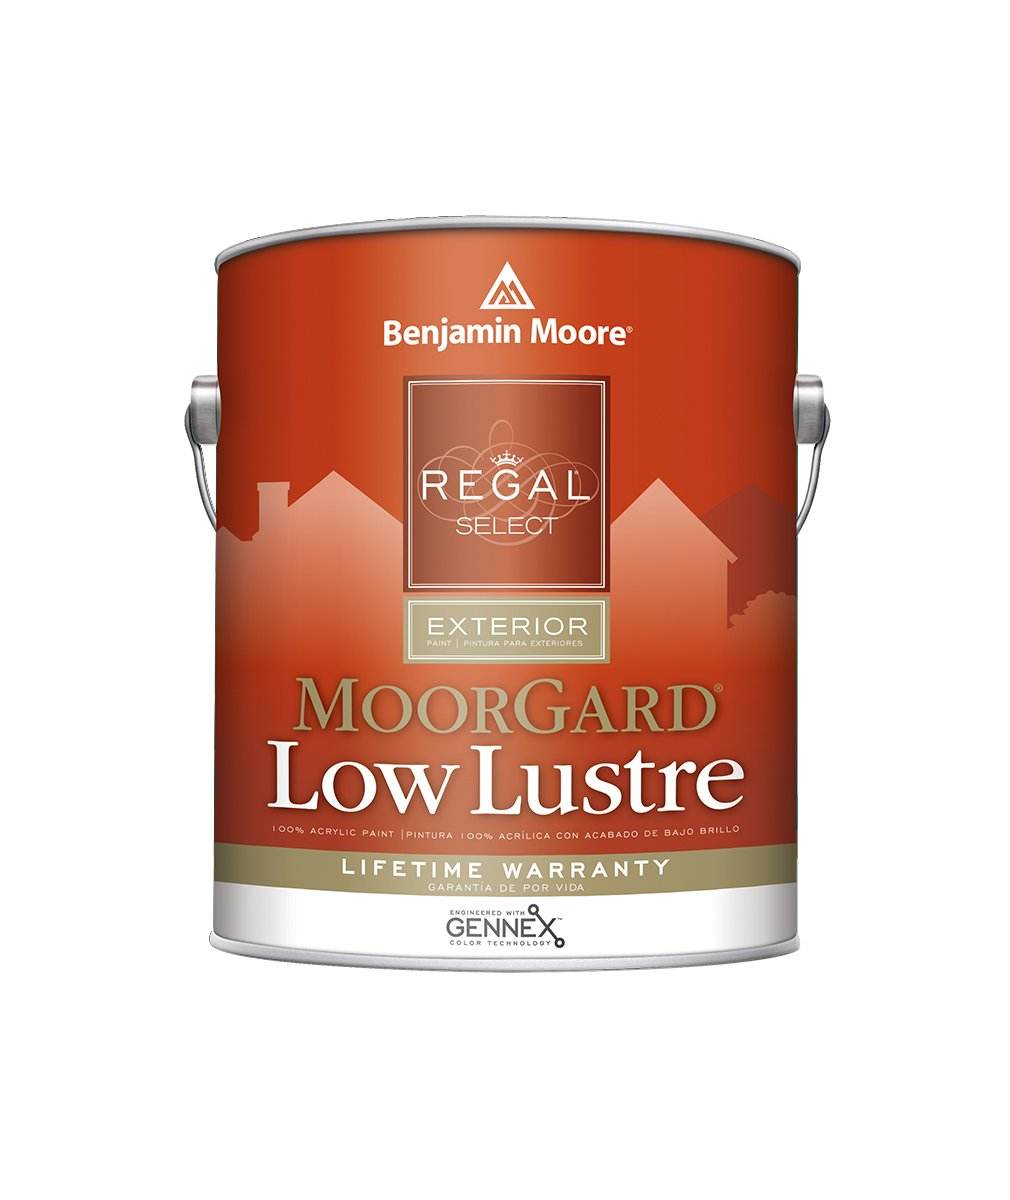 Benjamin Moore Regal Select Low Lustre Exterior Paint available at Clement's Paint